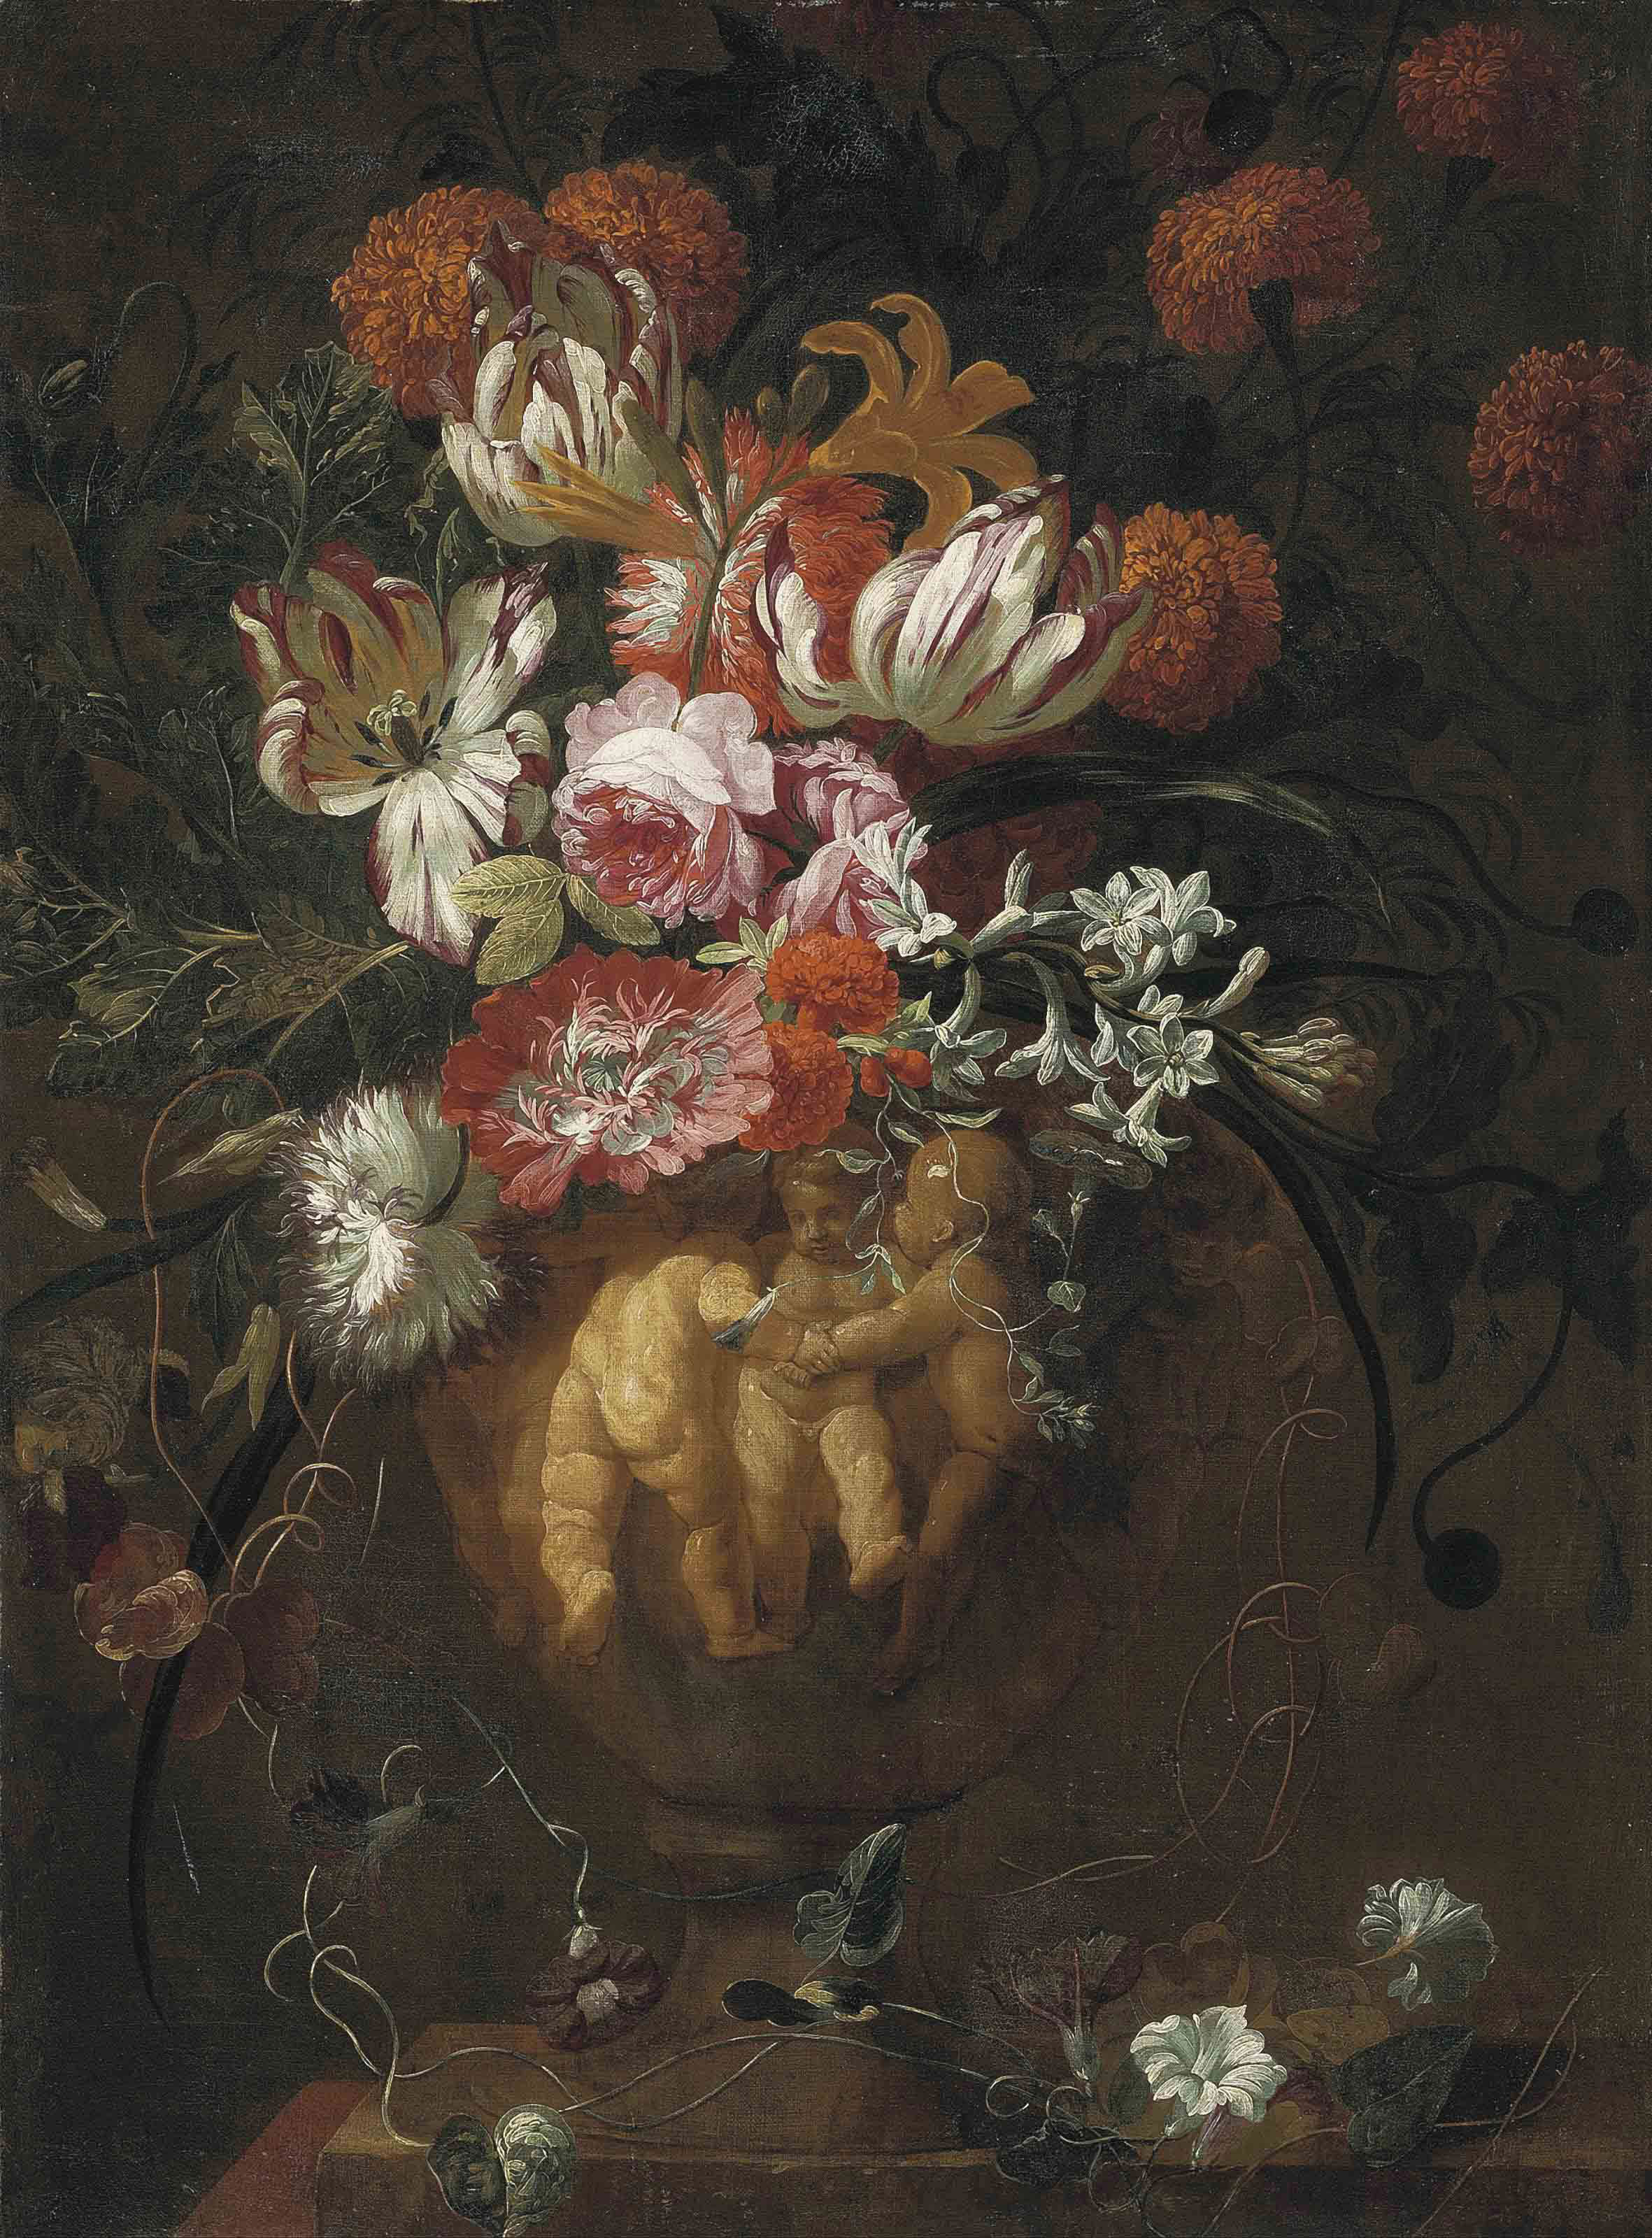 Roses, tulips and other flowers in a sculpted urn with putti in relief, on a ledge